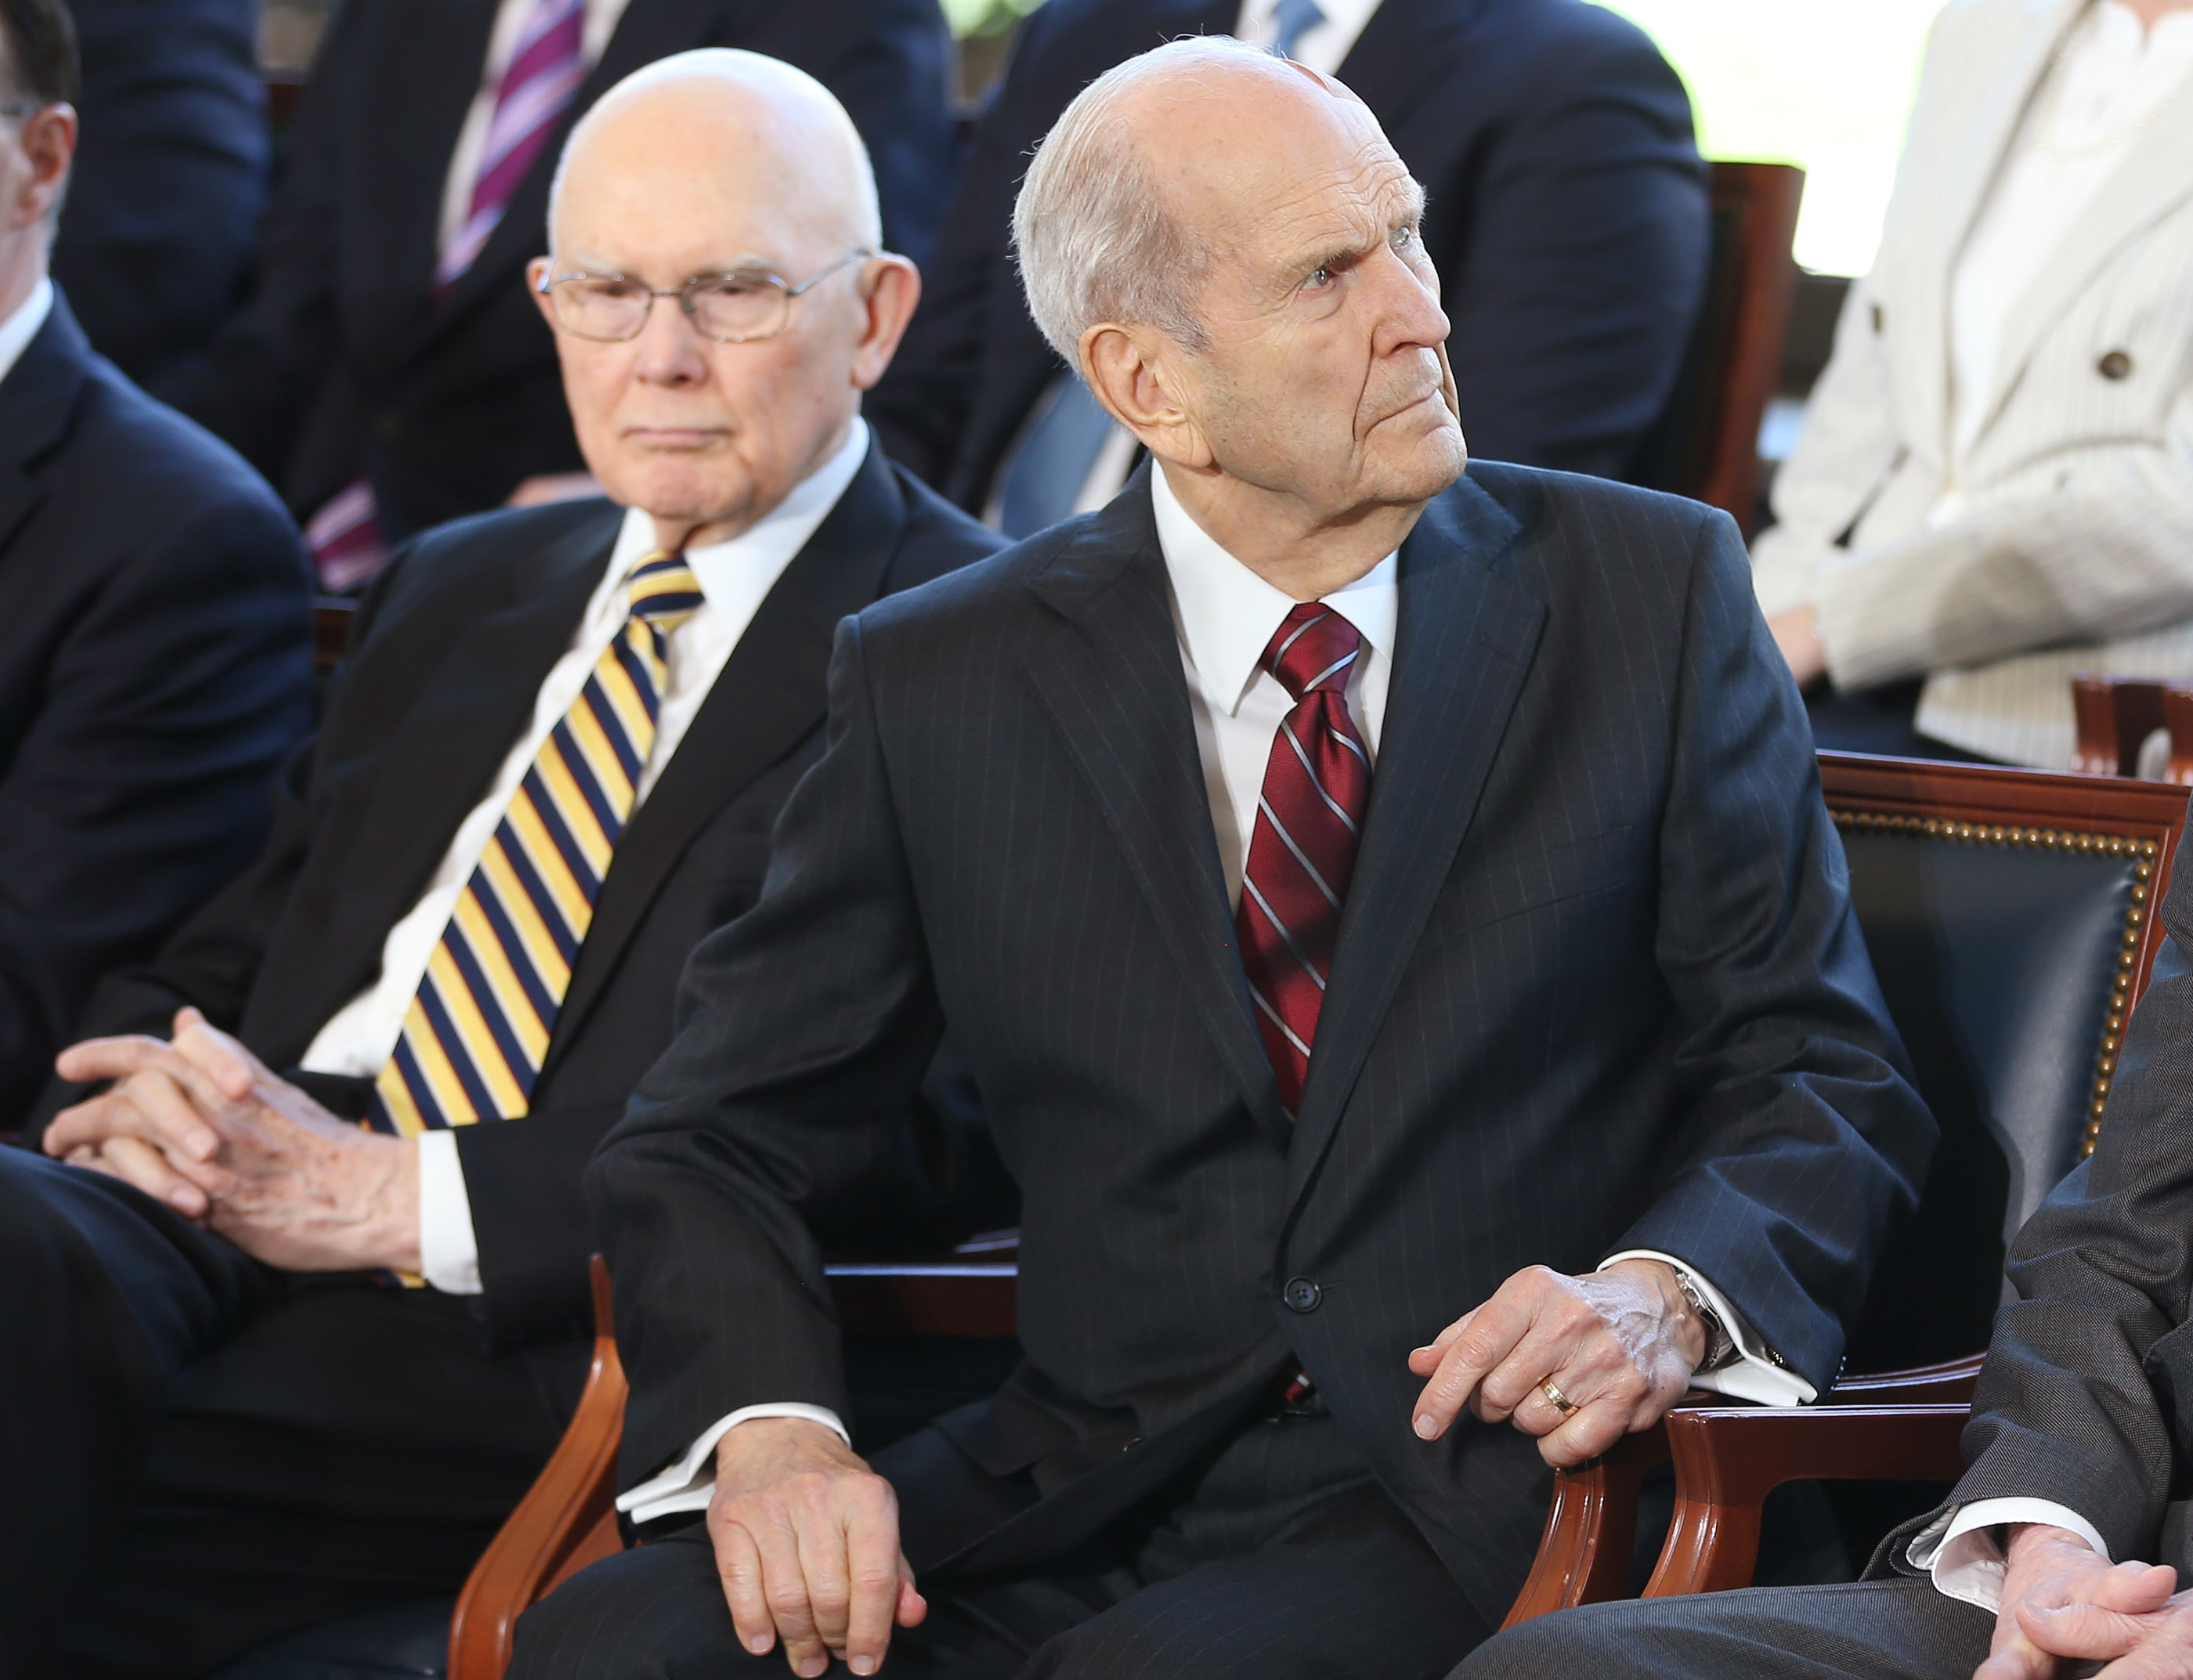 President Russell M. Nelson of The Church of Jesus Christ of Latter-day Saints looks over renderings during a press conference in Salt Lake City on Friday, April 19, 2019 about renovations to the Salt Lake Temple and Temple Square.